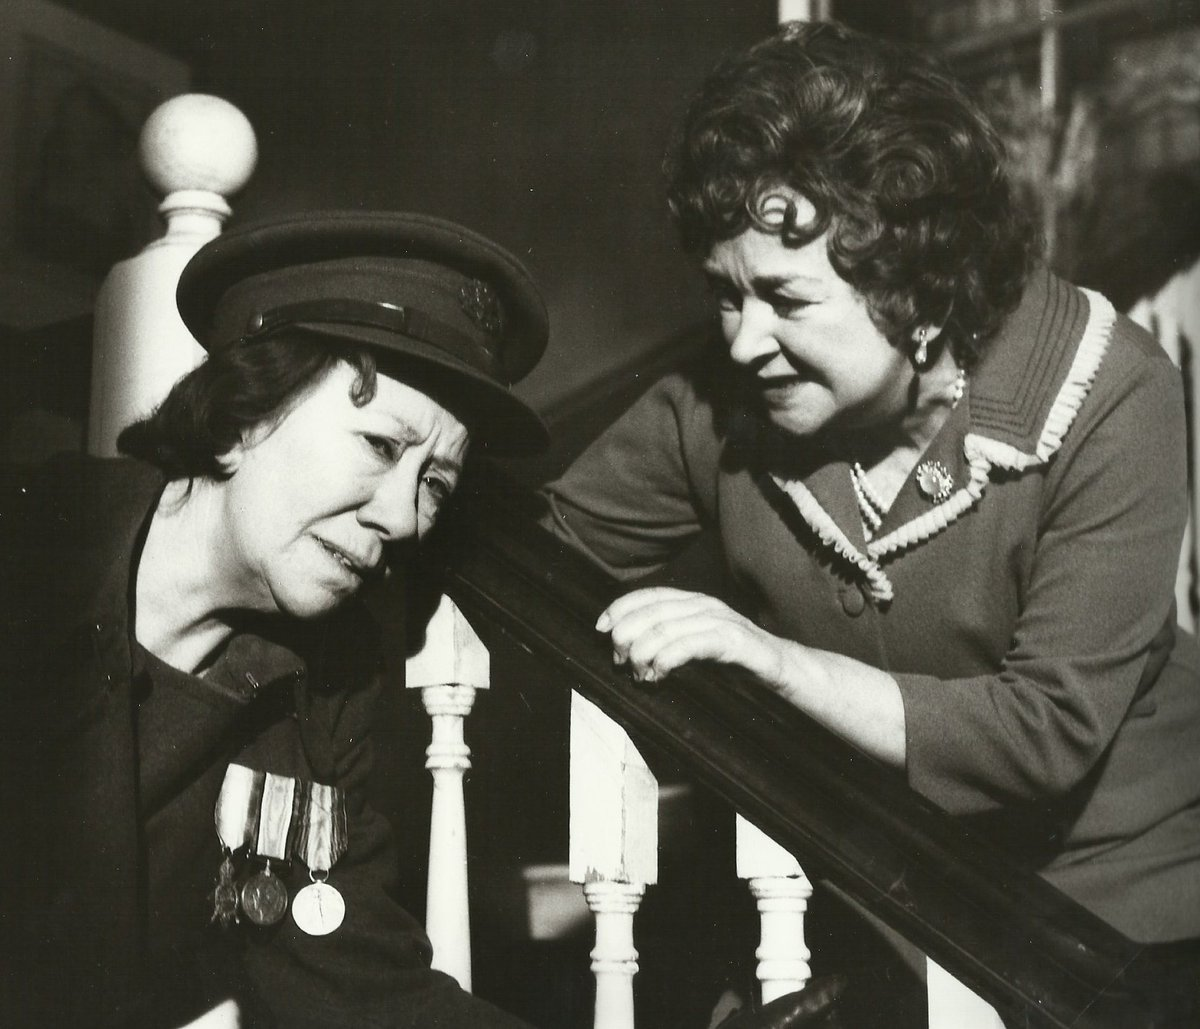 During the making of The Beast in the Cellar (1970), a crew member politely invited &quot;Dame Flora &amp; Dame Beryl&quot; to take their places on set.  Flora Robson: &quot;Oh no dear, Beryl&#39;s not a Dame&quot; Beryl Reid: &quot;No, I&#39;m not. But I do have all my own teeth&quot; <br>http://pic.twitter.com/7uciSbAskG